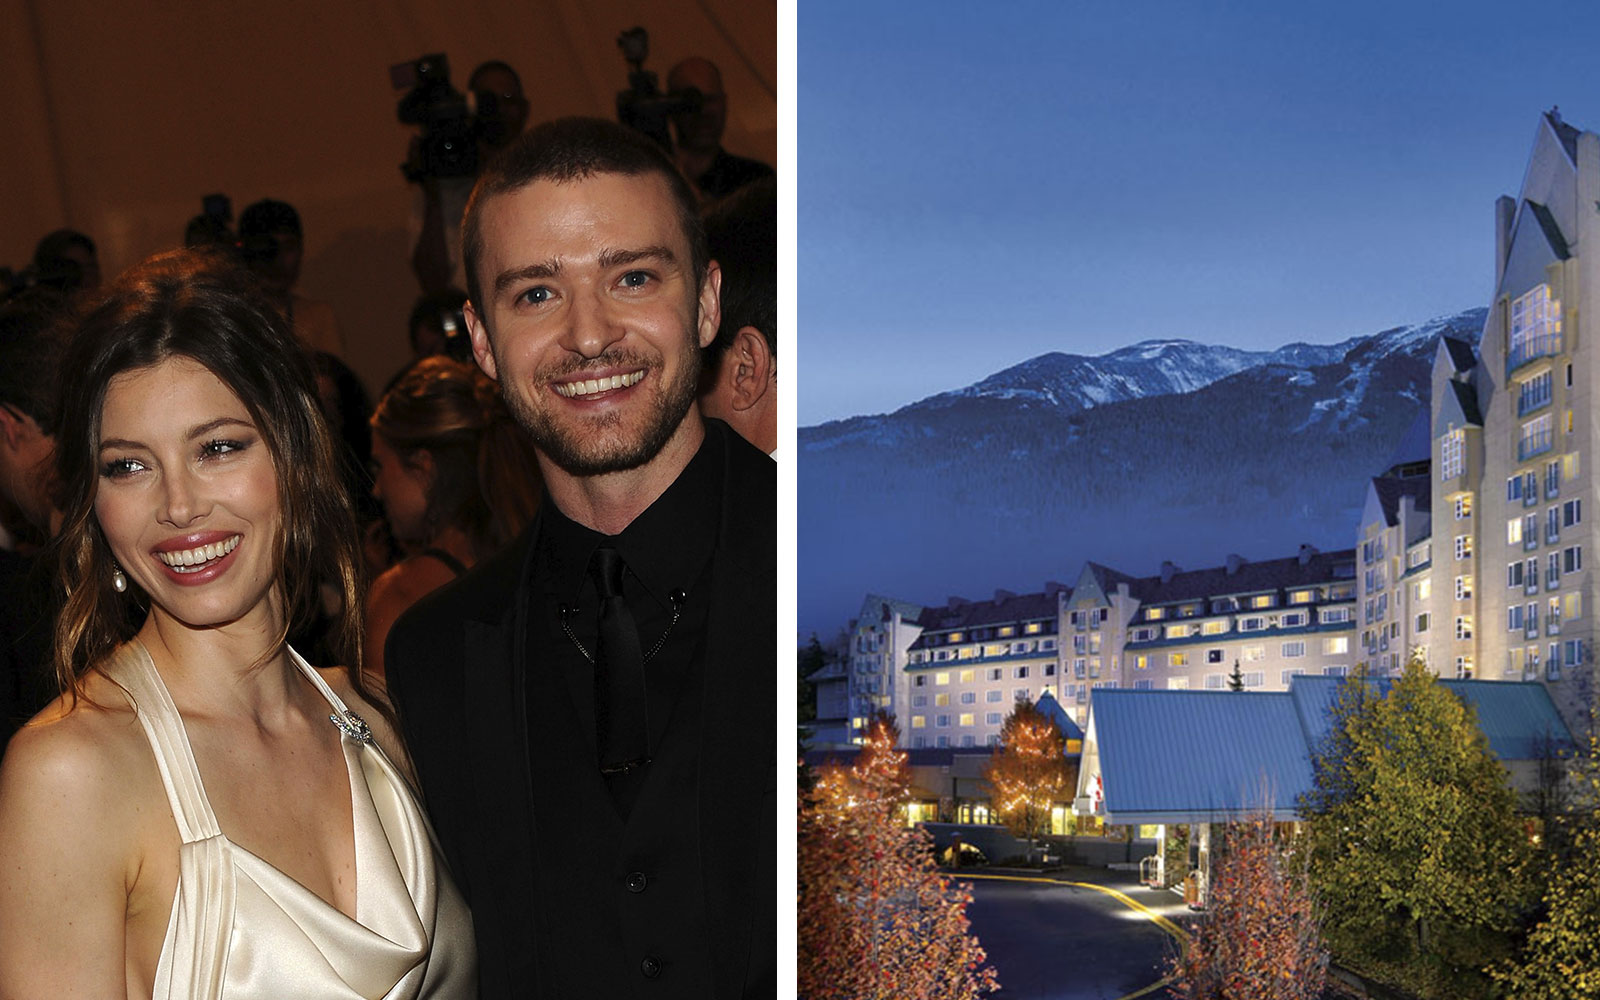 Hotels for Celebrity Sightings: Fairmont Chateau Whistler, Whistler, BC